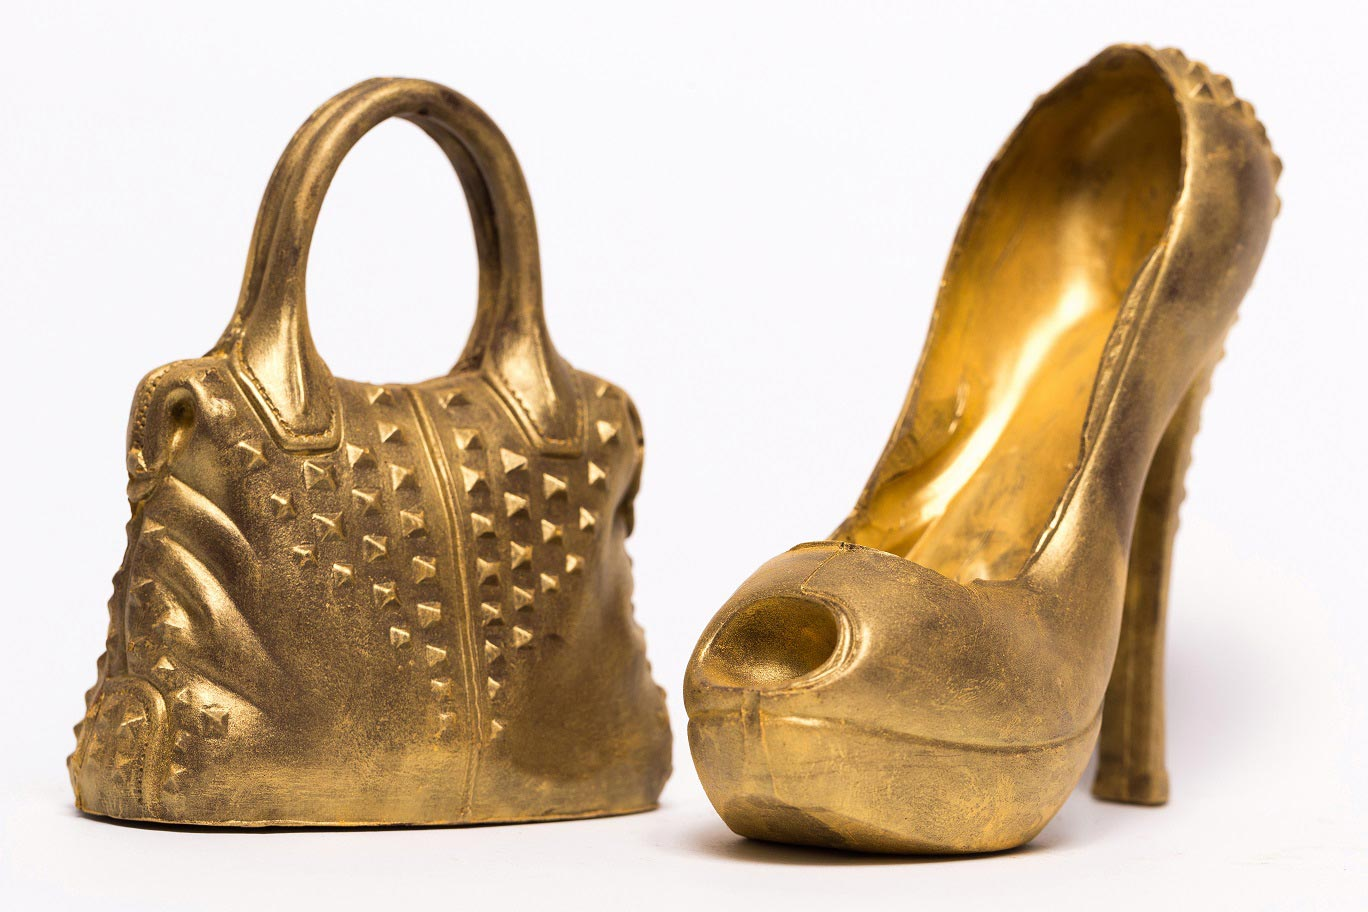 Handcrafted Chocolate Shoes And Handbags - A Perfect Gift This Xmas